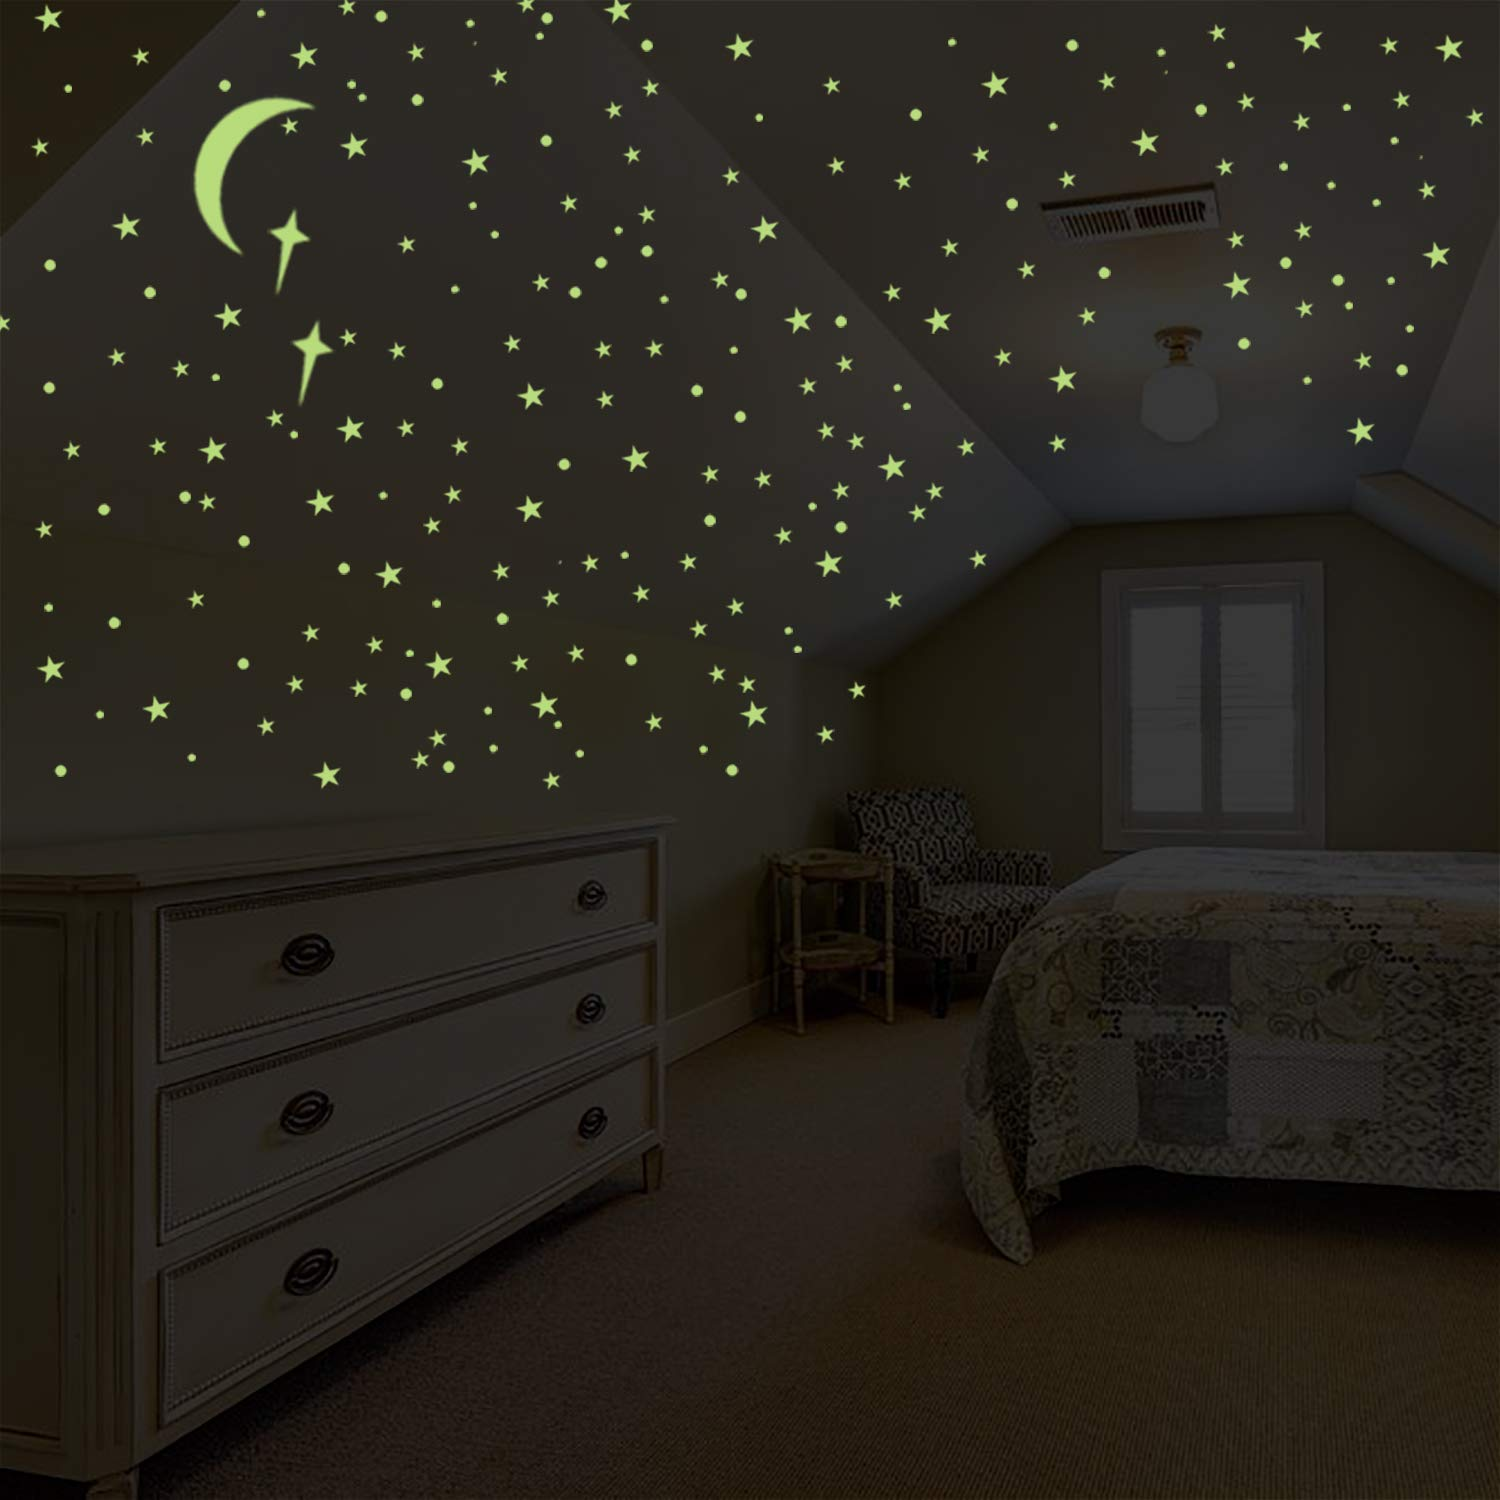 Parlaim Glow In The Dark Stars For Ceiling Wall Stickers For Bedroom Living Room Wall Decals For Kids Boys And Girls 008